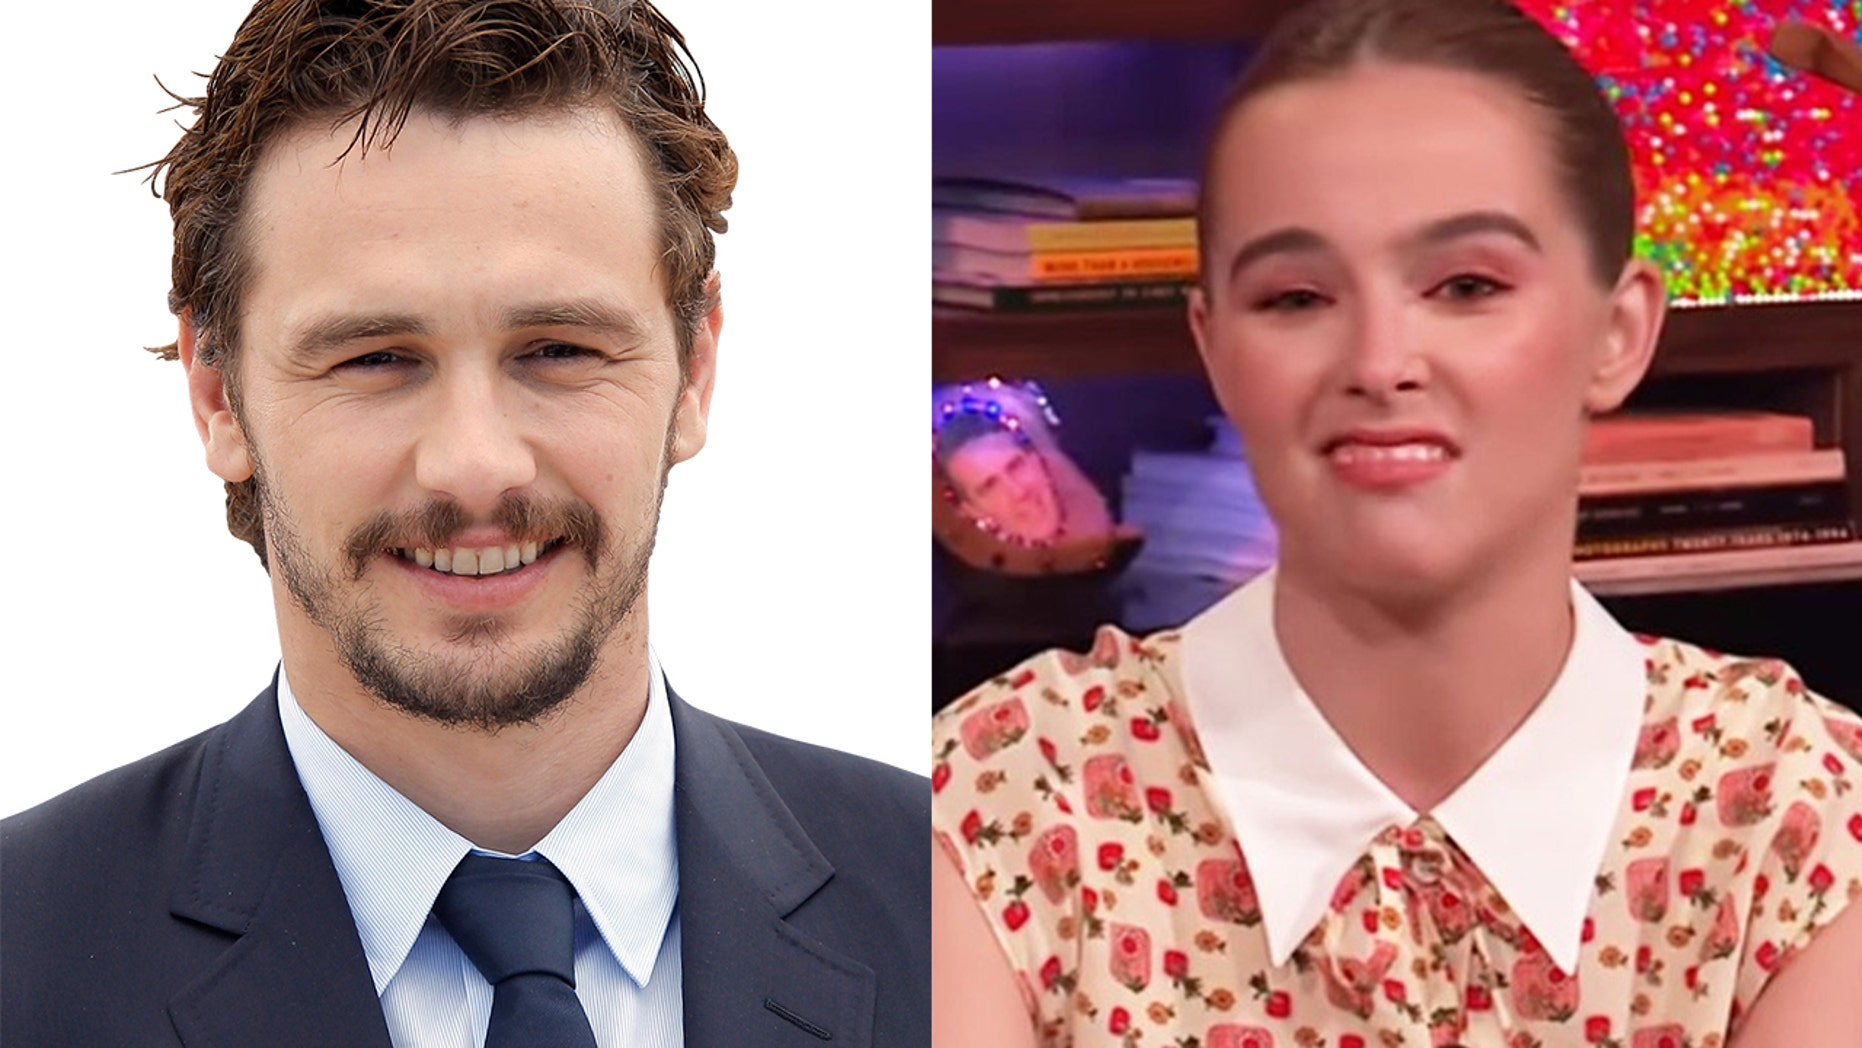 Zoey Deutch James Franco S Kissing Ability Is Meh Says